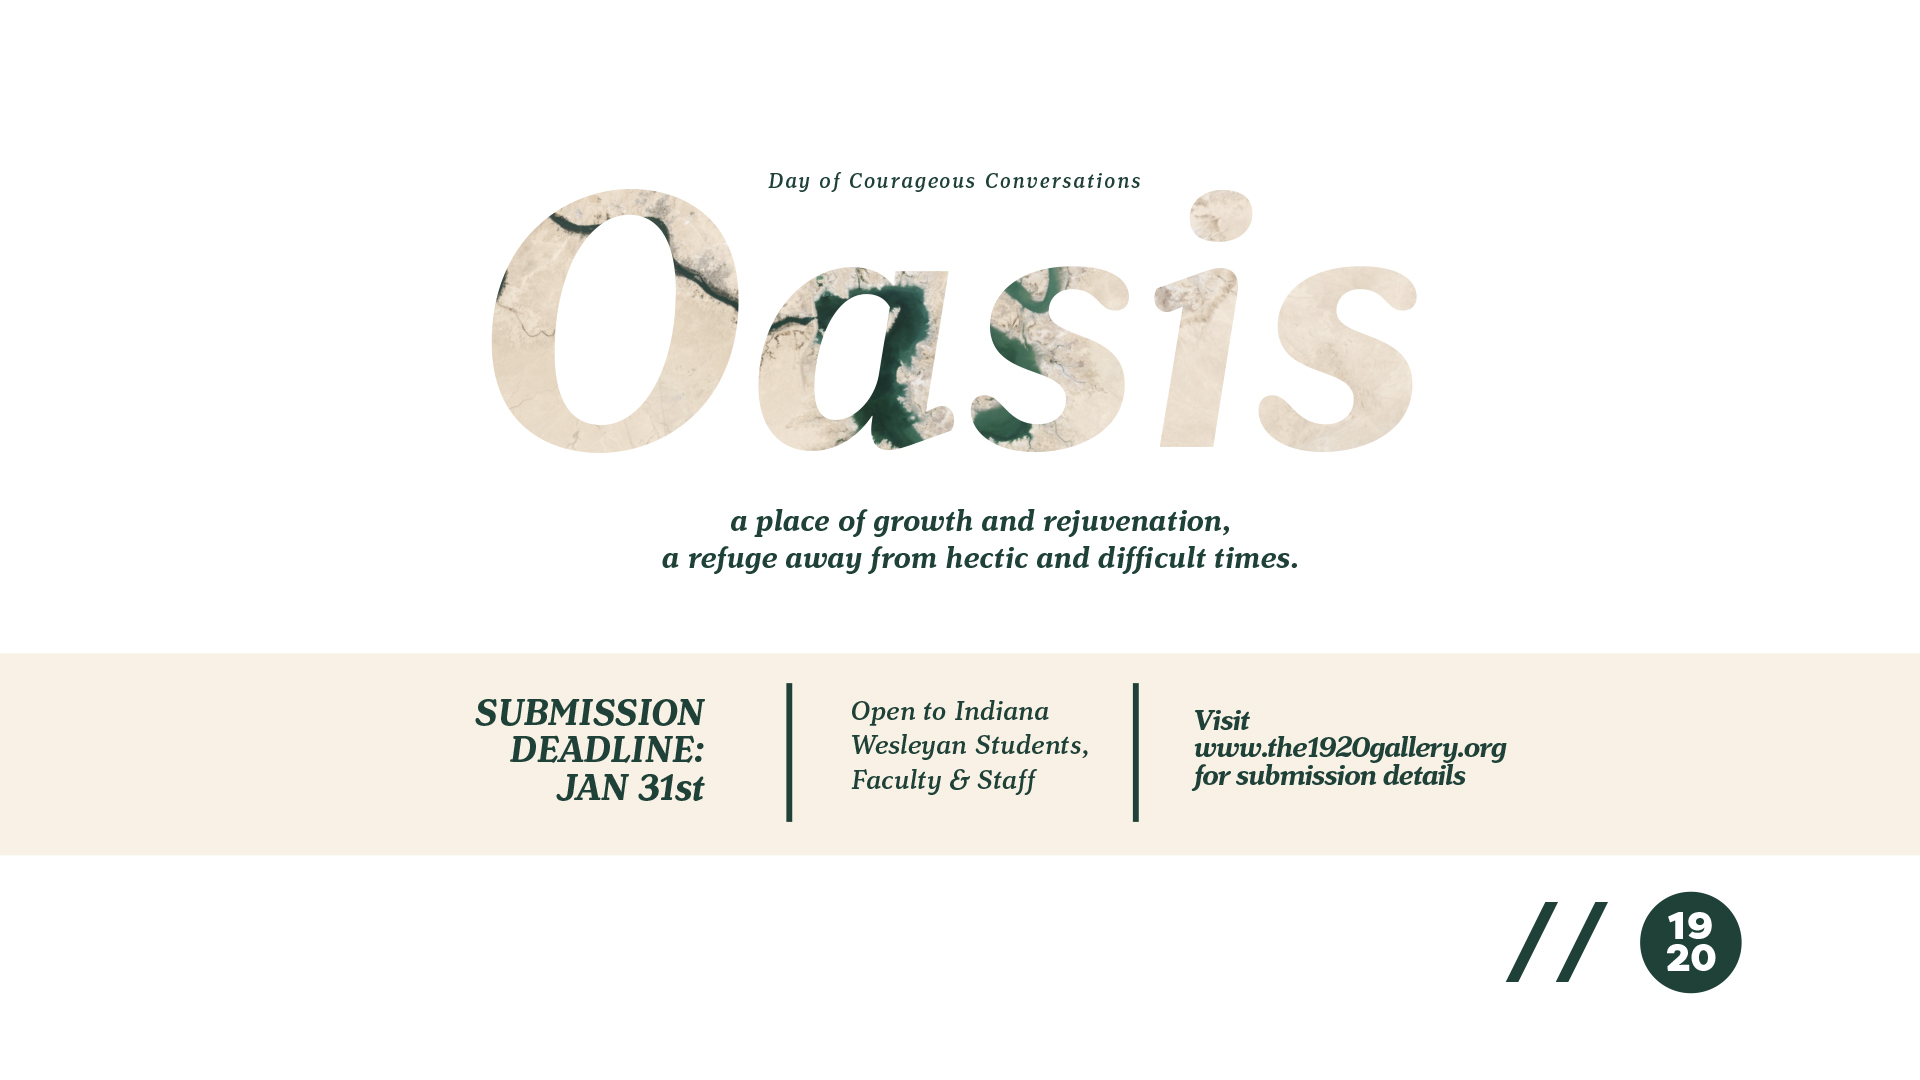 "Hello Indiana Wesleyan University students, faculty and staff!  The 1920 is happy to announce that ""Oasis"" is open for submissions! All students, faculty and staff are welcome to submit. The exhibit will open on Tuesday, Feb. 13 (Day of Courageous Conversations) presented alongside a poetry reading by writers from Caesura Magazine.  Oasis, a place of growth and rejuvenation. Oasis, a refuge away from hectic and difficult times. We hope to create a space for you that serves as a refuge--a safe place where you can grow and recharge in whatever way you need.    Submission deadline: Wednesday, Jan. 31 at midnight.    Here are the details:   ARTWORK REQUIREMENTS:   2D work must be wall-hanging ready.                                                                                                        Maximum 3D work must be able to fit through a standard doorway.   HOW TO SUBMIT:   Please send a maximum of 5 jpeg (300dpi) images to sophie.stewart@indwes.edu. Please include your name, the title of the artworks, year of creation, medium and dimensions and price. Please note that the gallery will recieve 20% commission on artworks sold within the gallery.    KEY DATES:   Submission deadline: Wednesday, Jan. 31 at midnight  Notification of acceptance: Thursday, Feb. 1  Delivery of Artworks: Friday, Feb. 9 by 5:00pm  Exhibition Dates: Tuesday, Feb. 13 - Friday, Feb. 23  Reception Date: Tuesday, Feb. 13 Opening time TBD  Don't forget, Caesura is also looking for art submissions for their publication so make sure you to submit to Caesura as well:  https://caesuraliterarymagazine.submittable.com/submit     So excited to see your submissions!  Sophie Stewart                                                                                                                                                                             The 1920 Gallery Fellow                                                                                                                        sophie.stewart@indwes.edu"